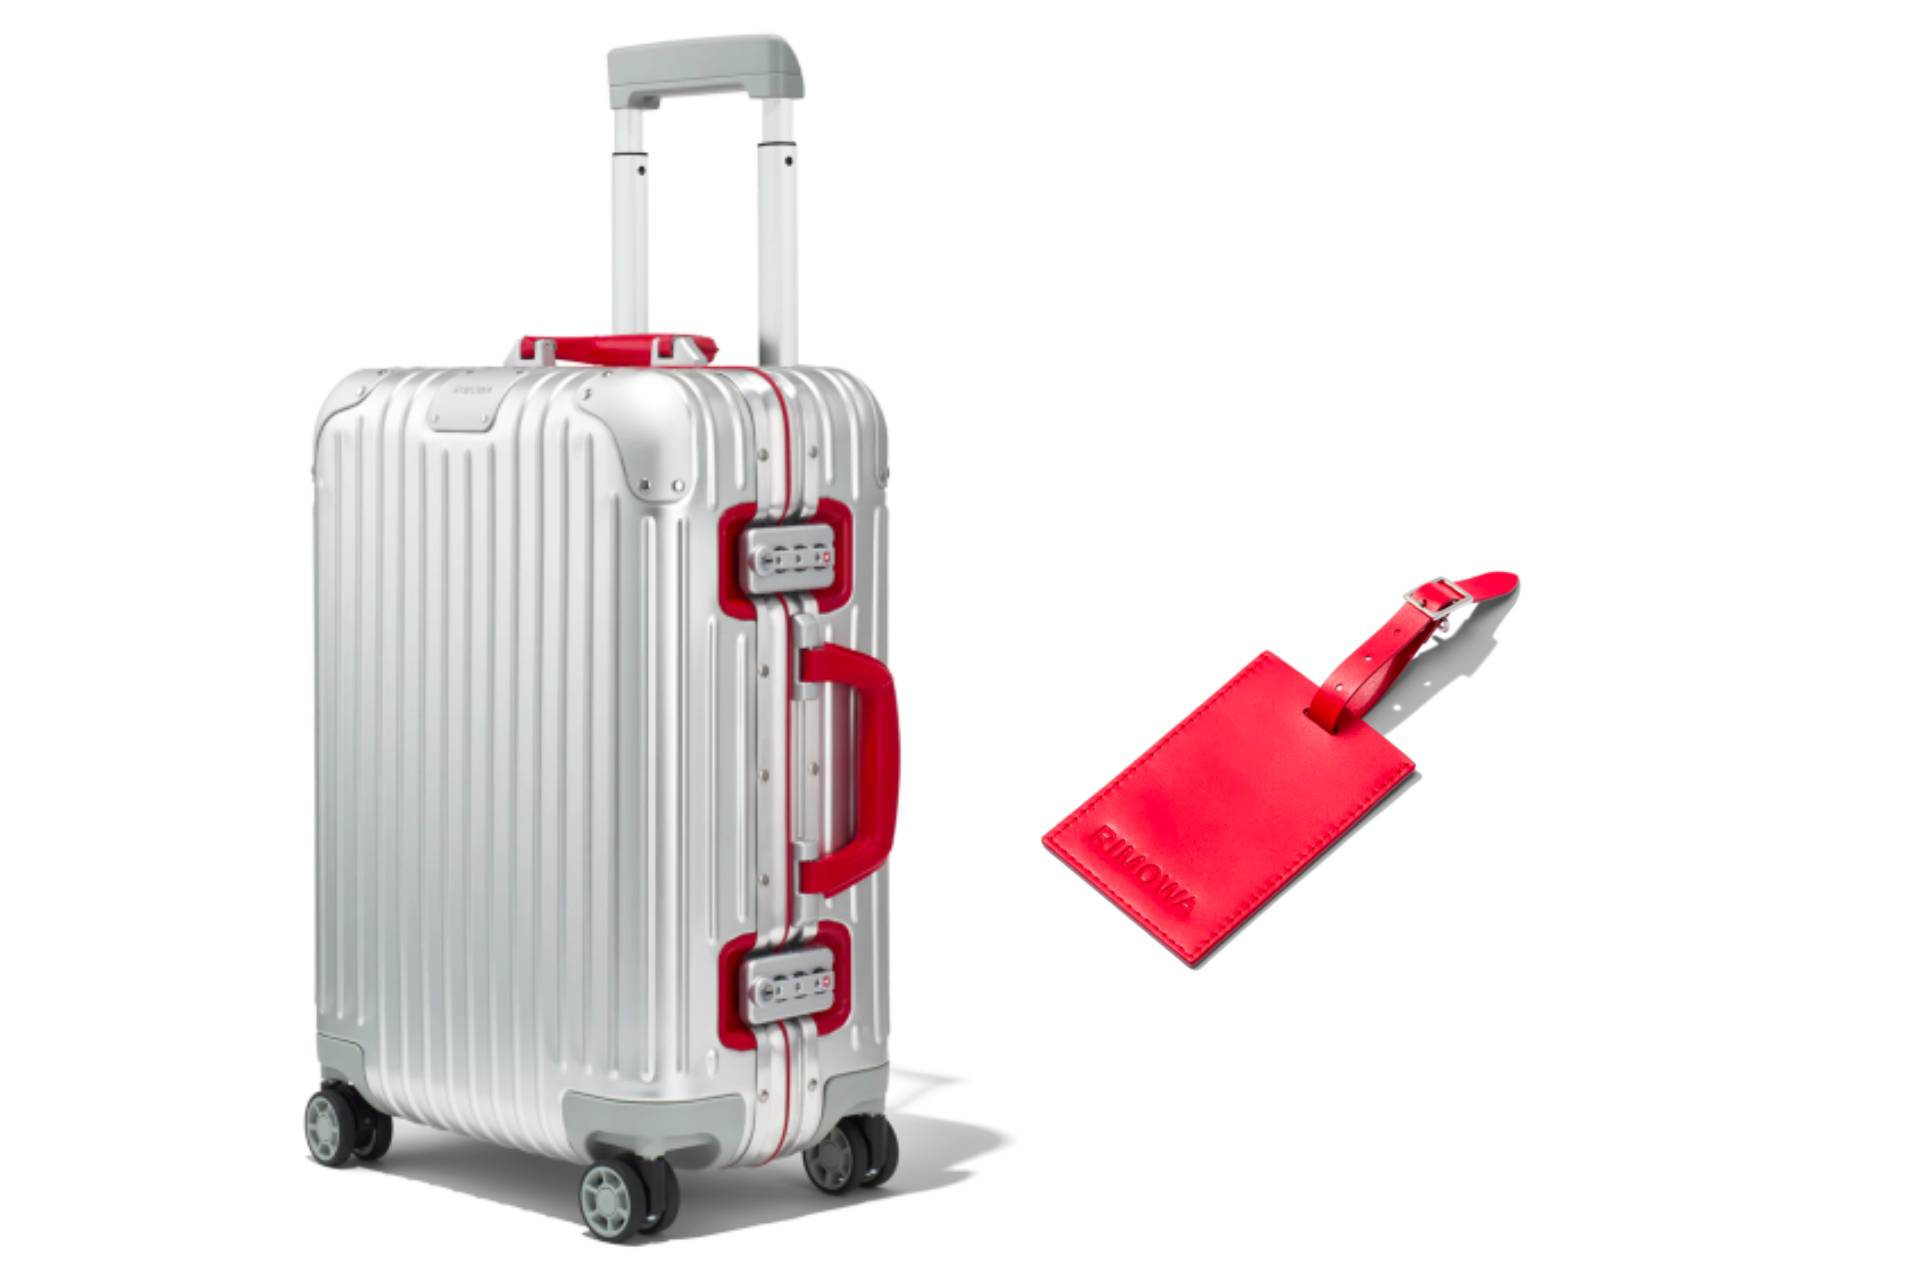 Gift Ideas For Him - RIMOWA Cabin Twist Carry-On Luggage.